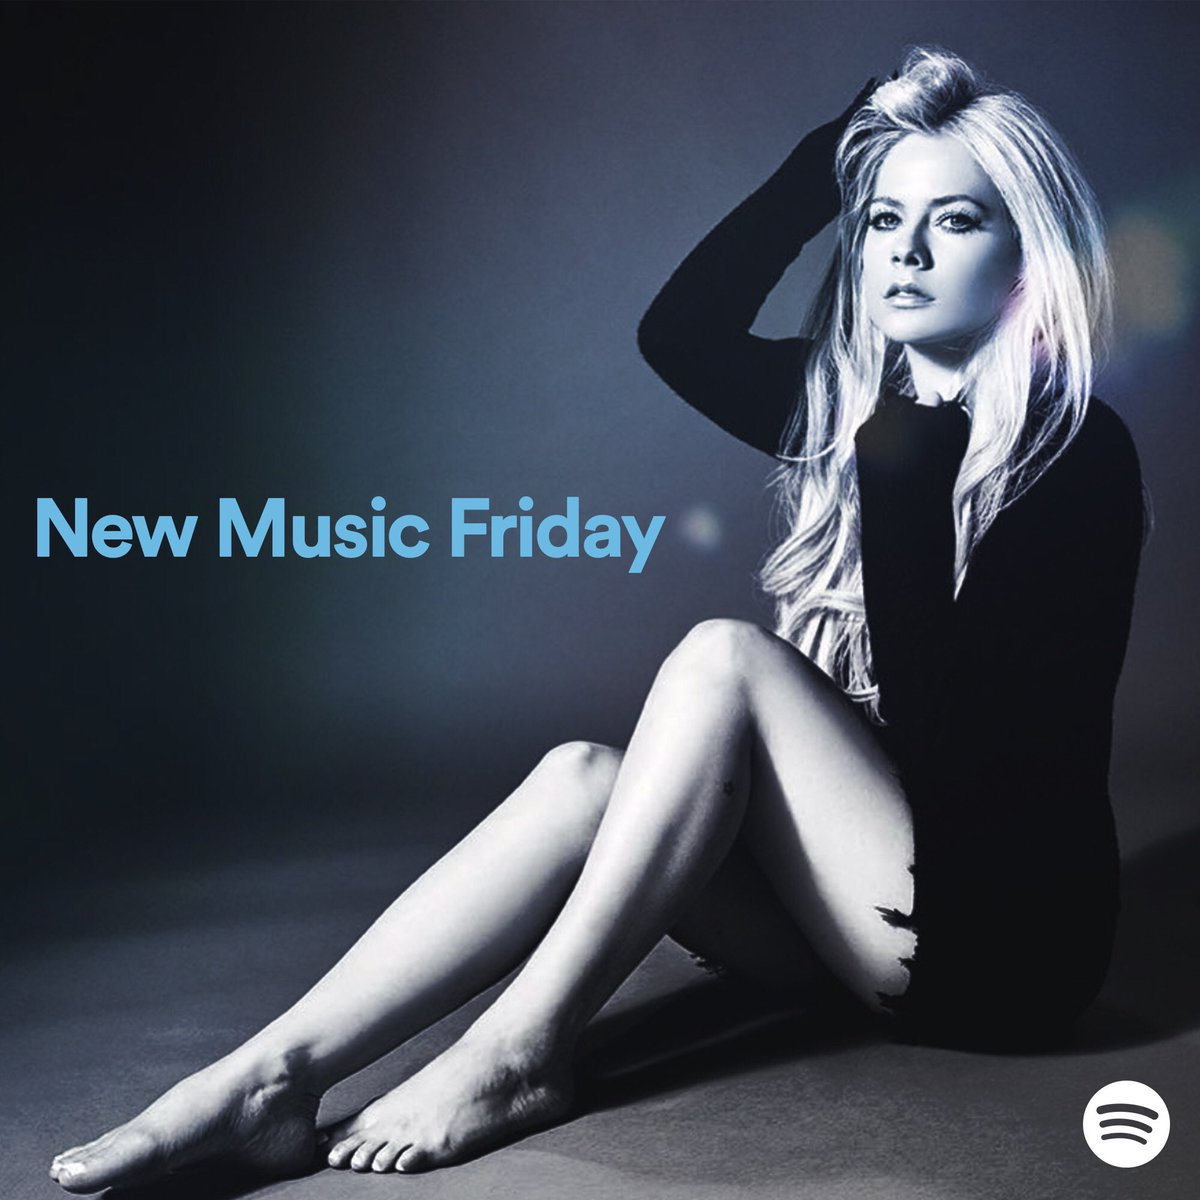 Can't believe #HeadAboveWater is on more than 20 #NewMusicFriday playlists around the world https://t.co/7fey6bbRPa